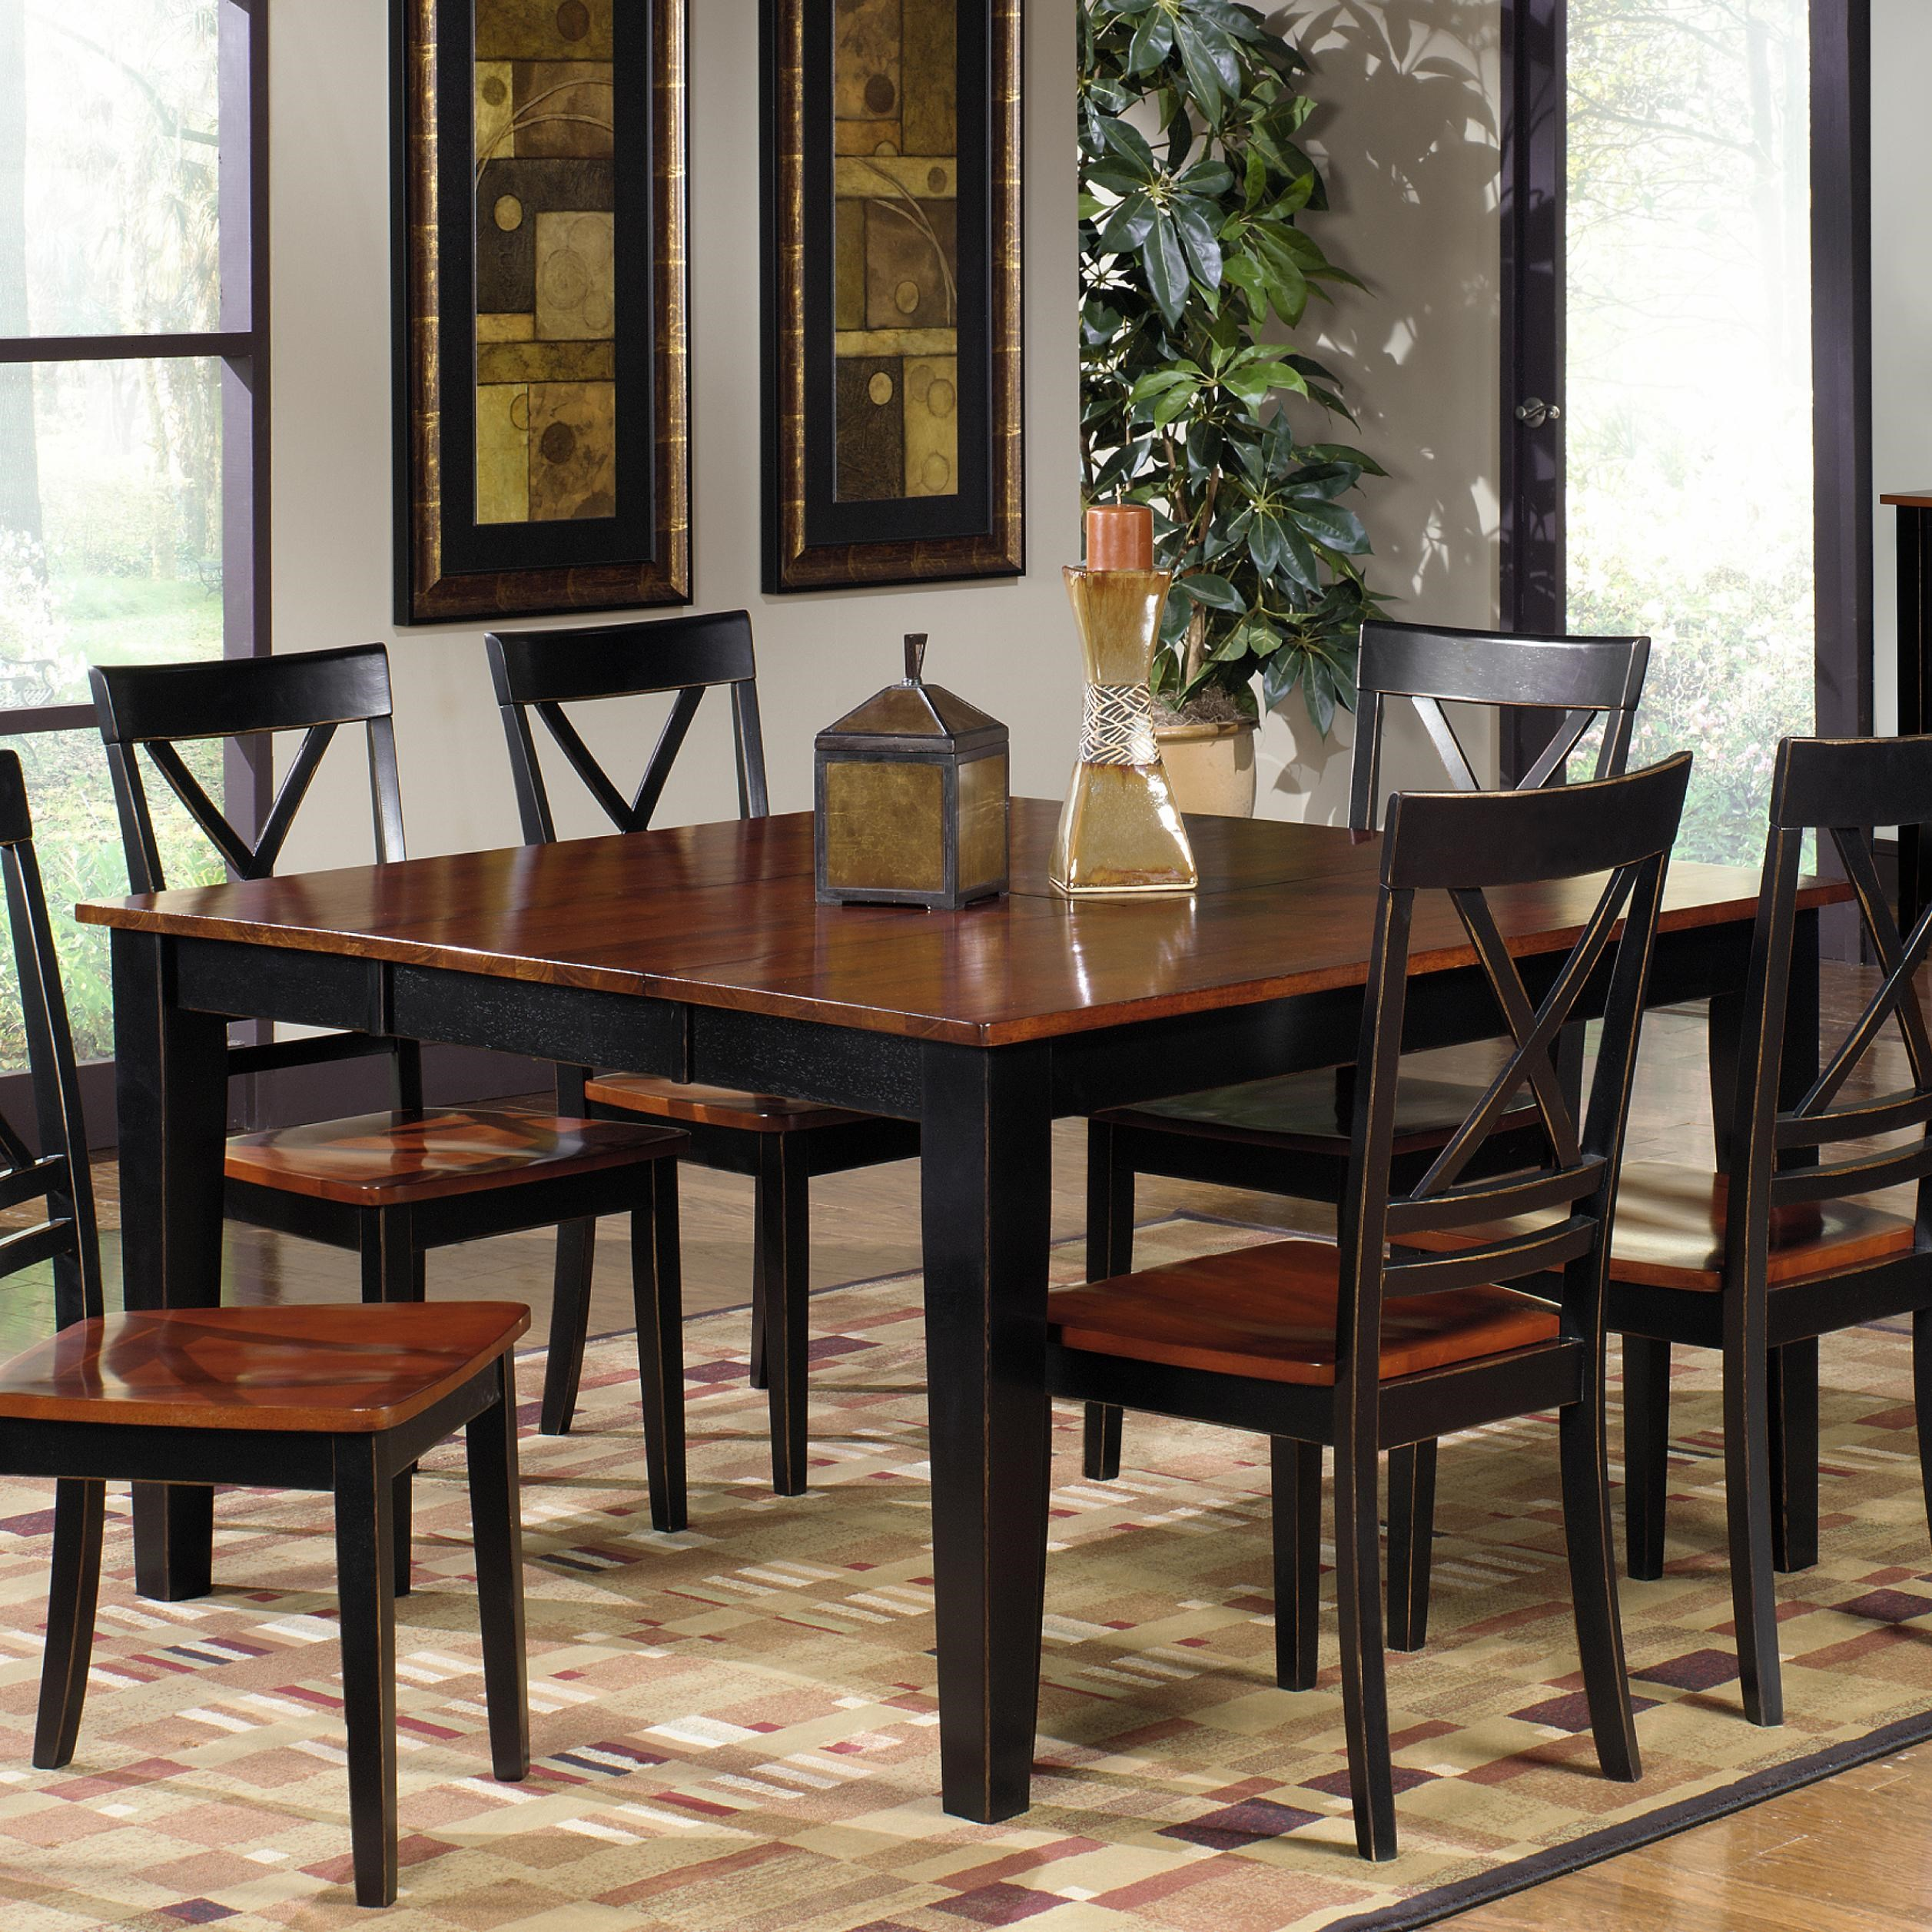 Progressive Furniture Cosmo Casual Dining Table with Leaf